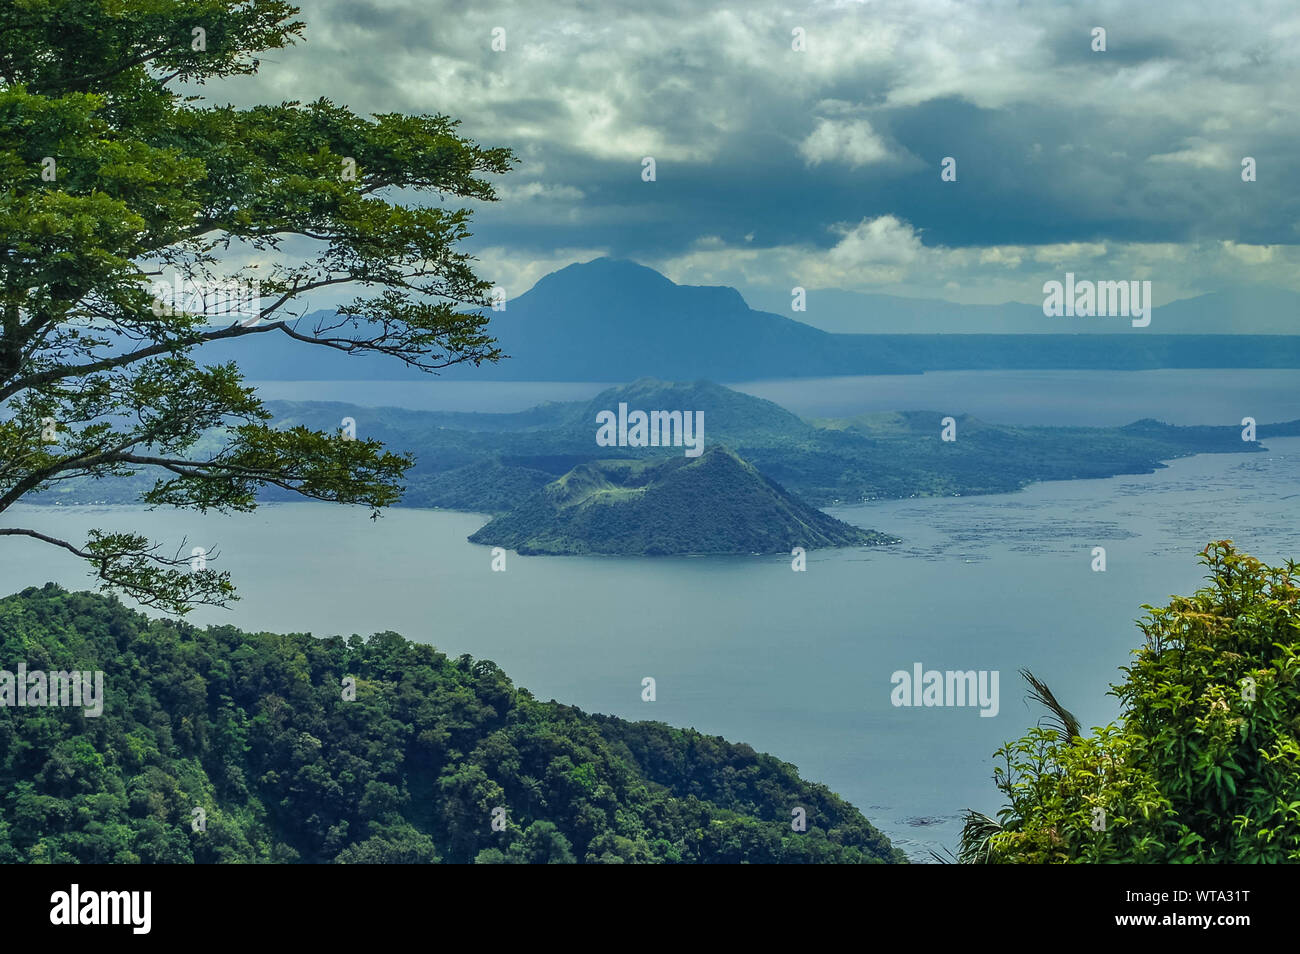 View Of Trees With Mountain Range In Background Stock Photo